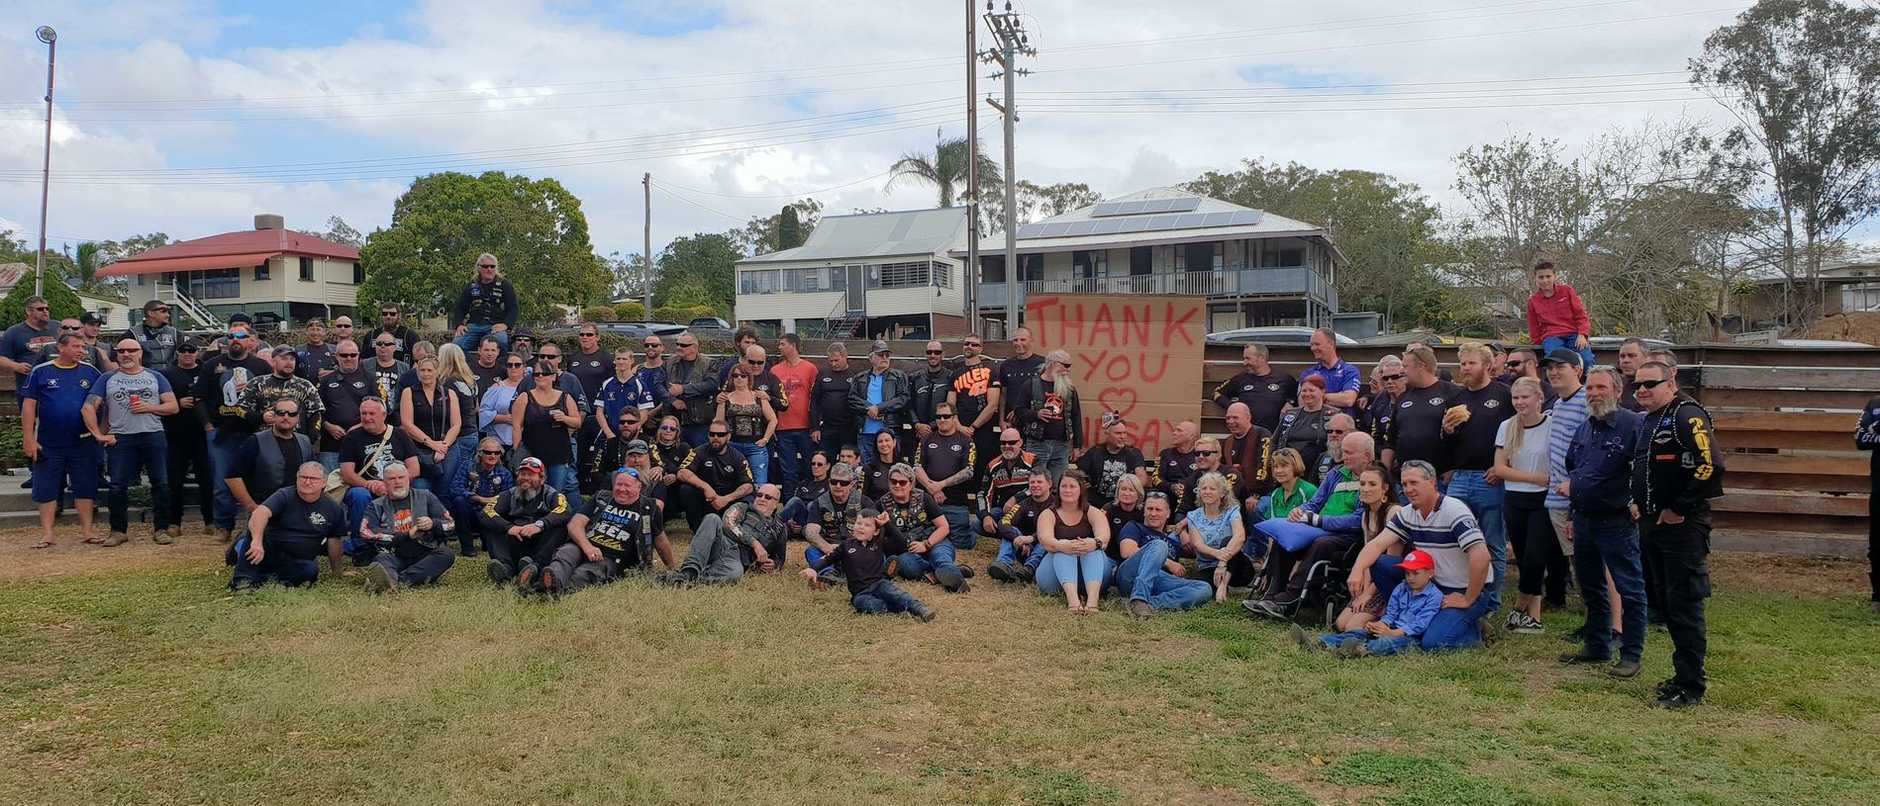 RIDING FOR LINDSAY: Riders in the Daly's Gym motorcycle fundraising ride on September 21 stand with a sign made by Lindsay's dad Peter Smith to thank them for raising money for Lindsay.